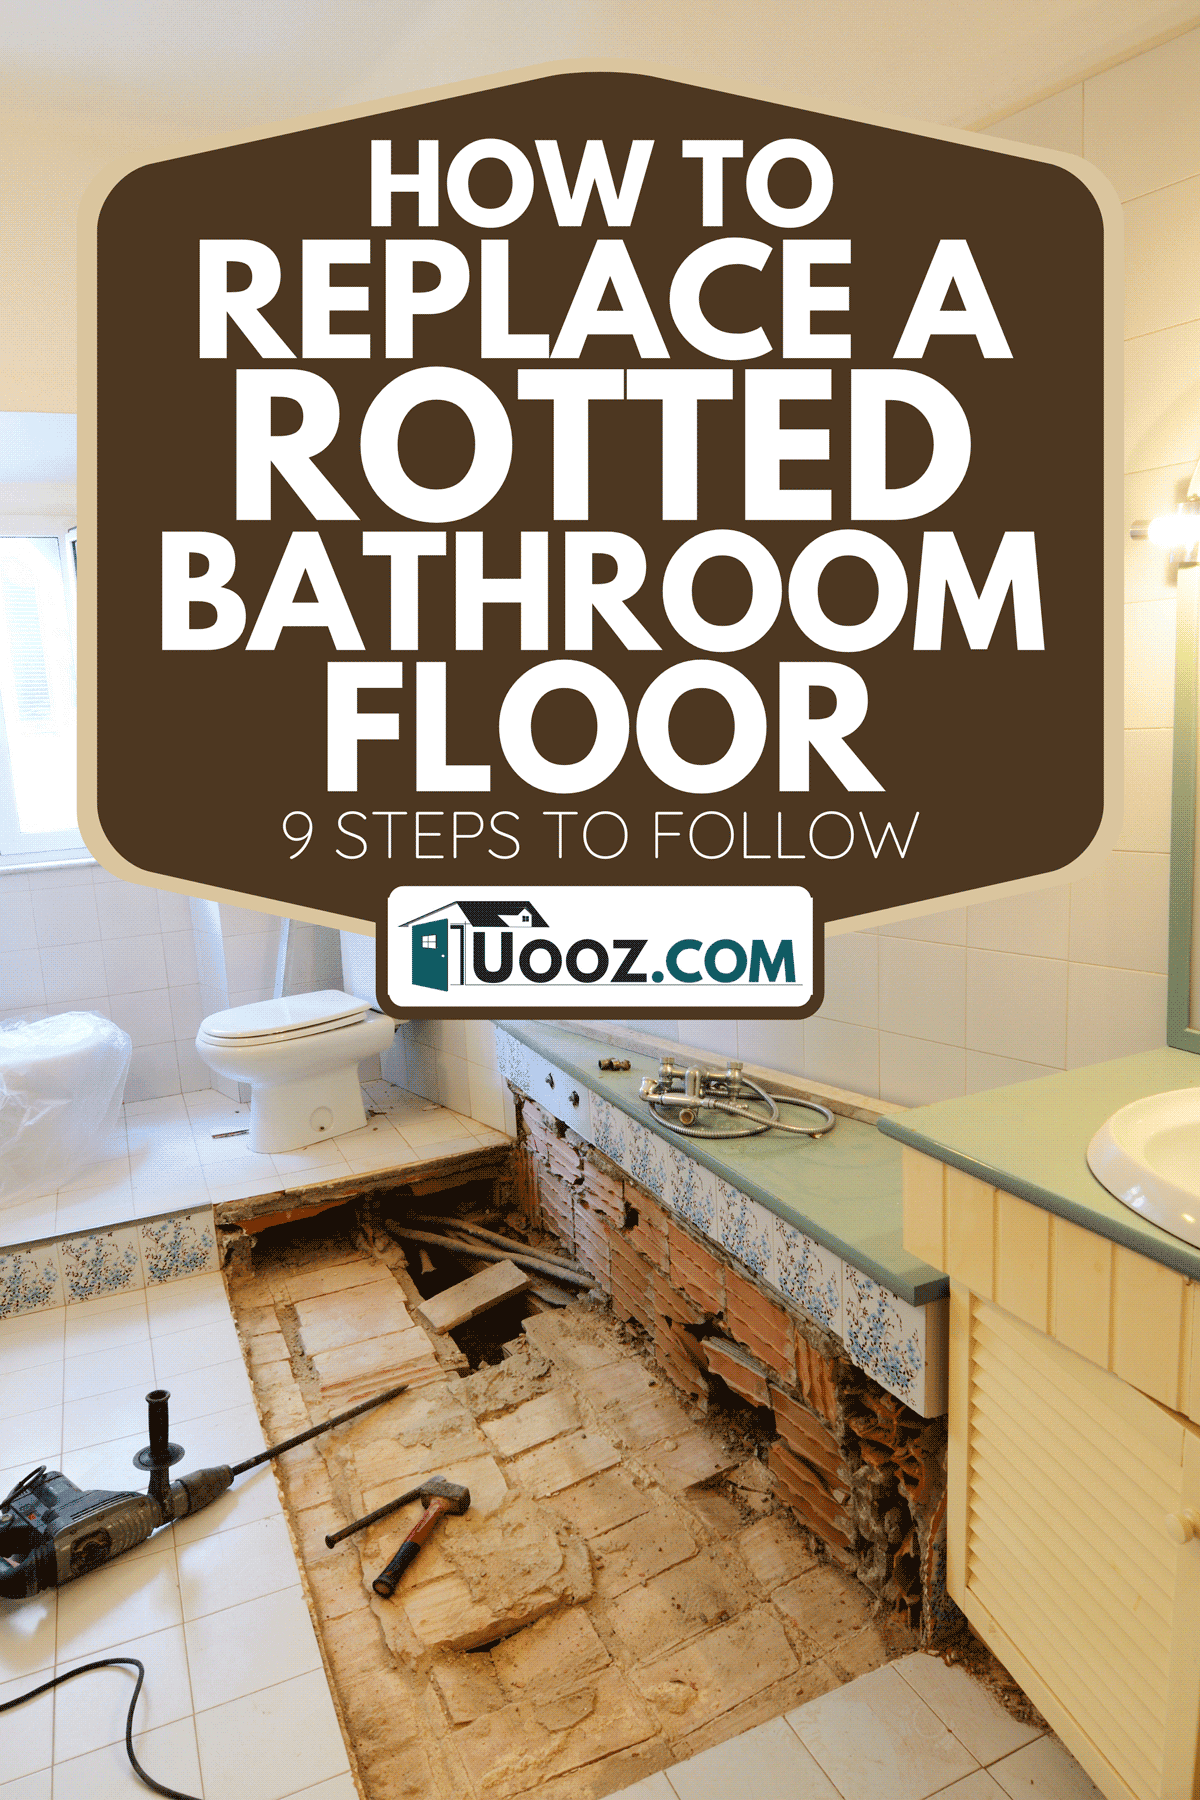 Bathroom renovation changing tiles, How To Replace A Rotted Bathroom Floor - 9 Steps To Follow